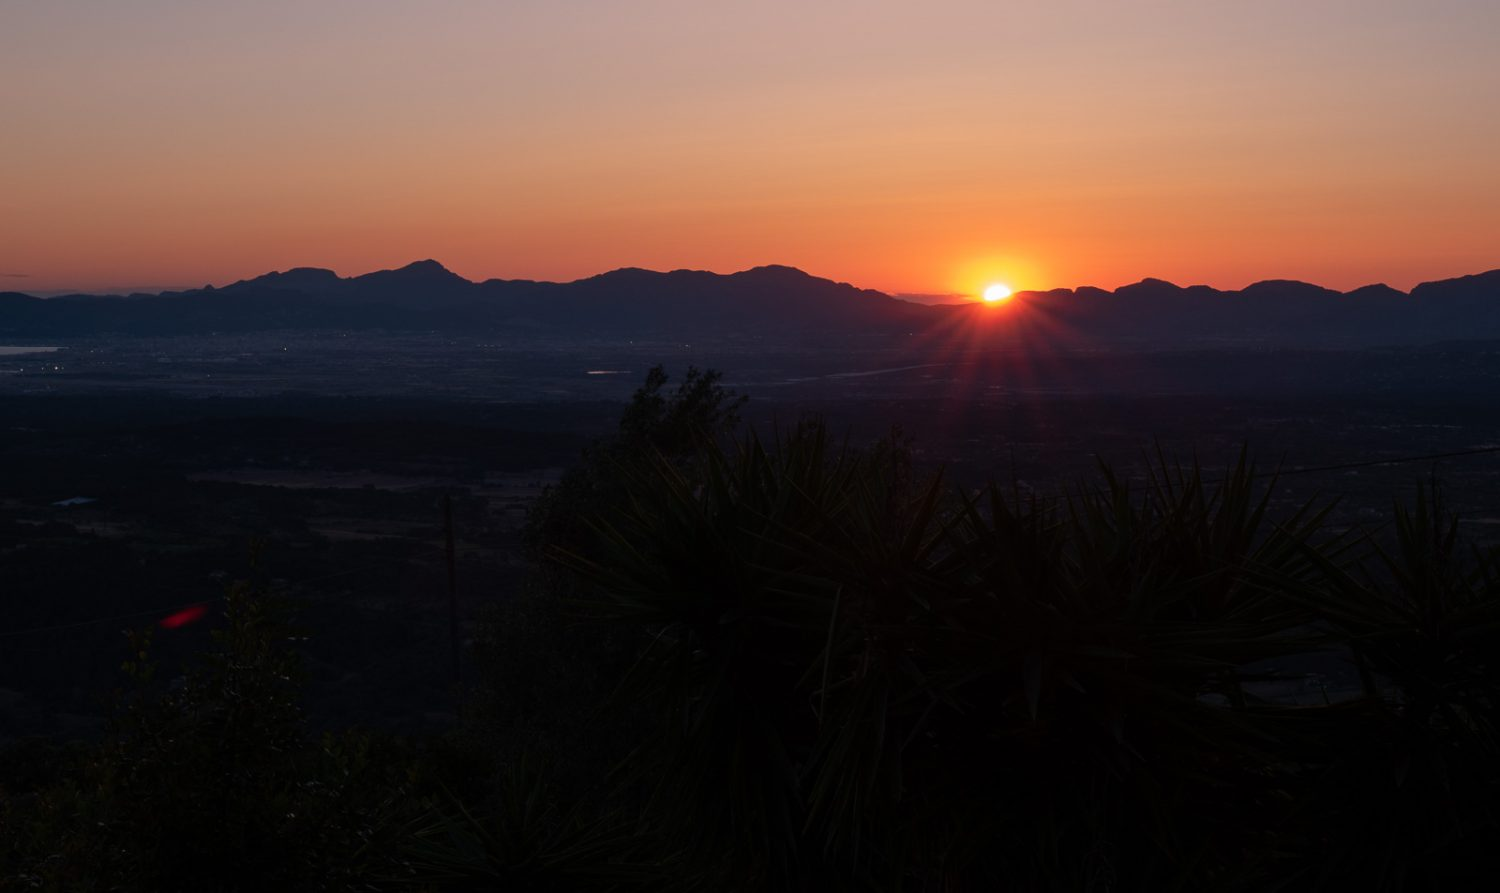 Shot of an orange sunset with foreground in complete darkness.